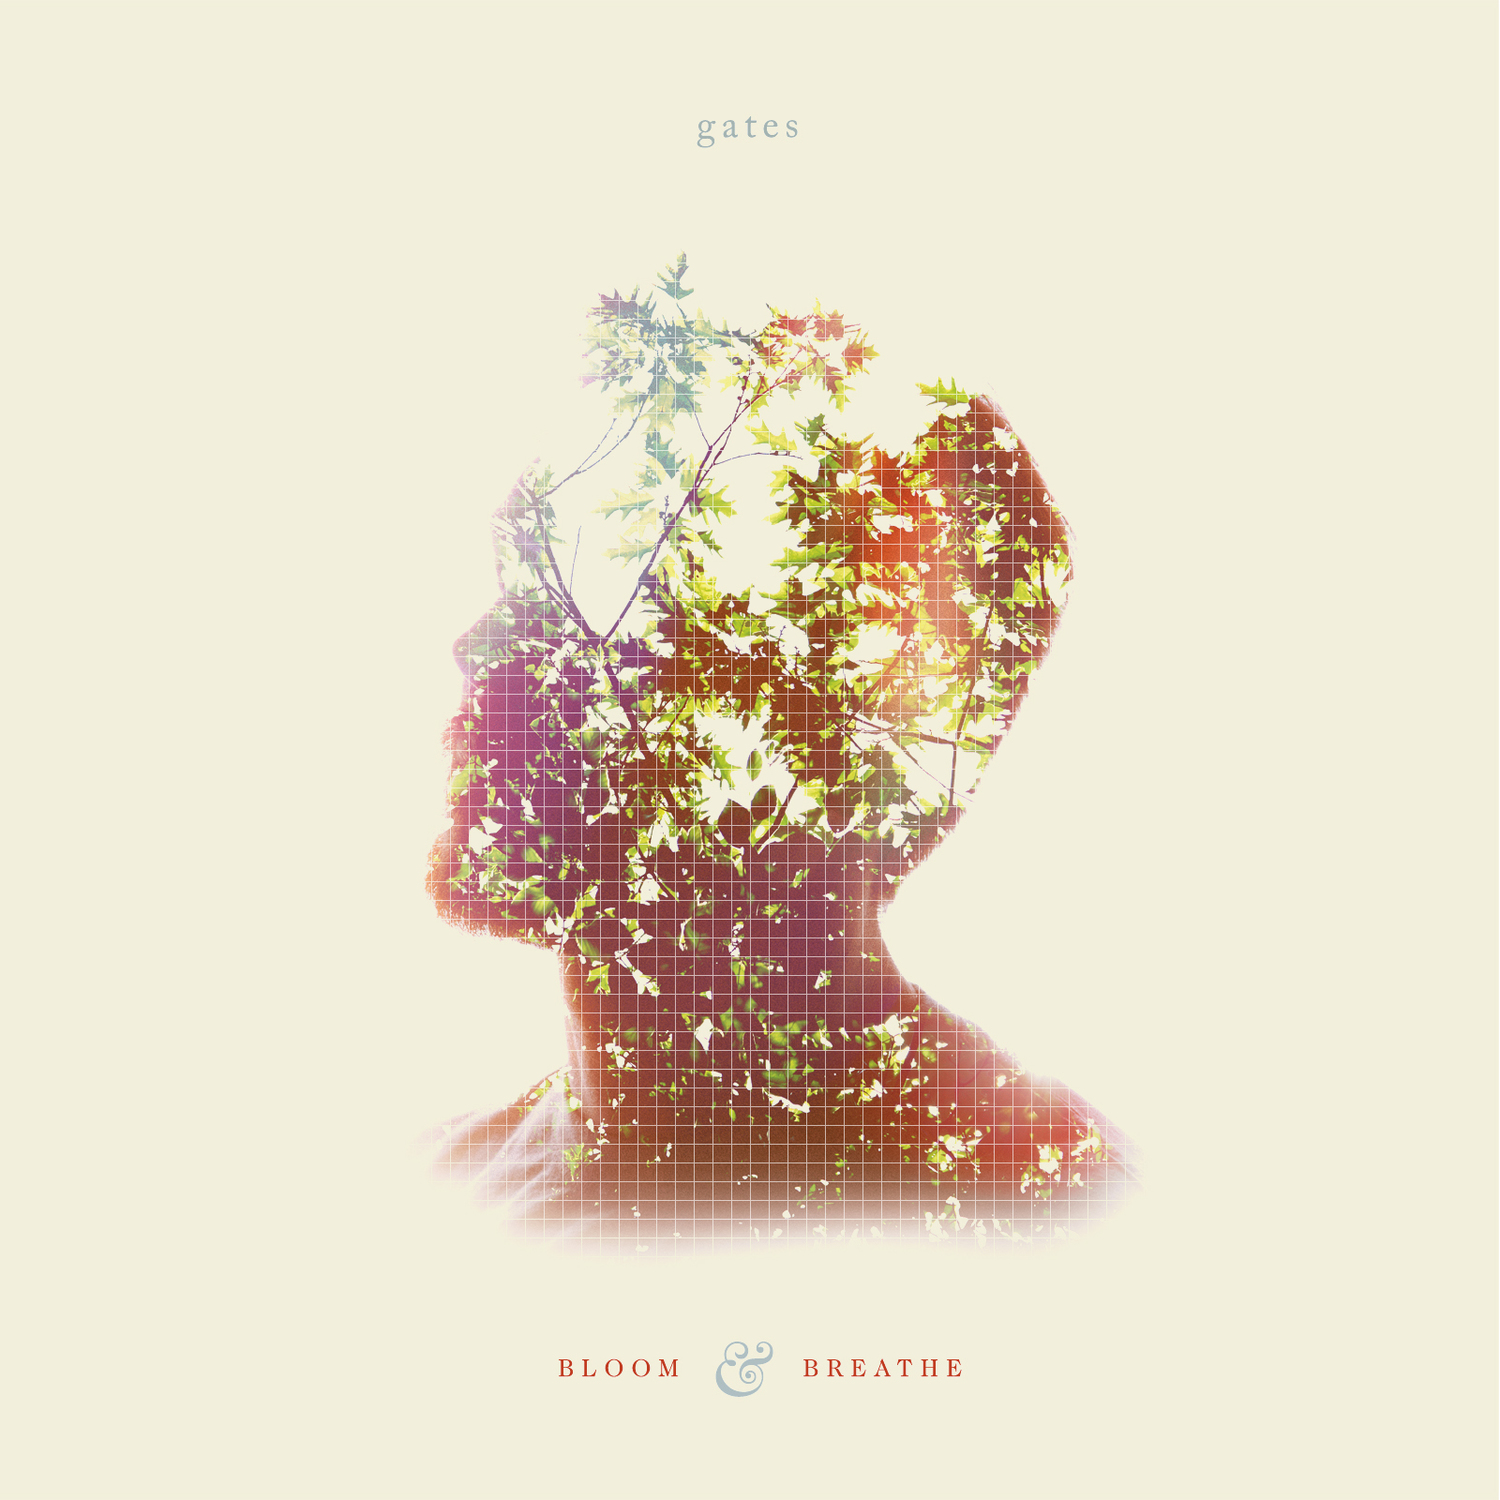 Gates - Bloom & Breathe - Available Now